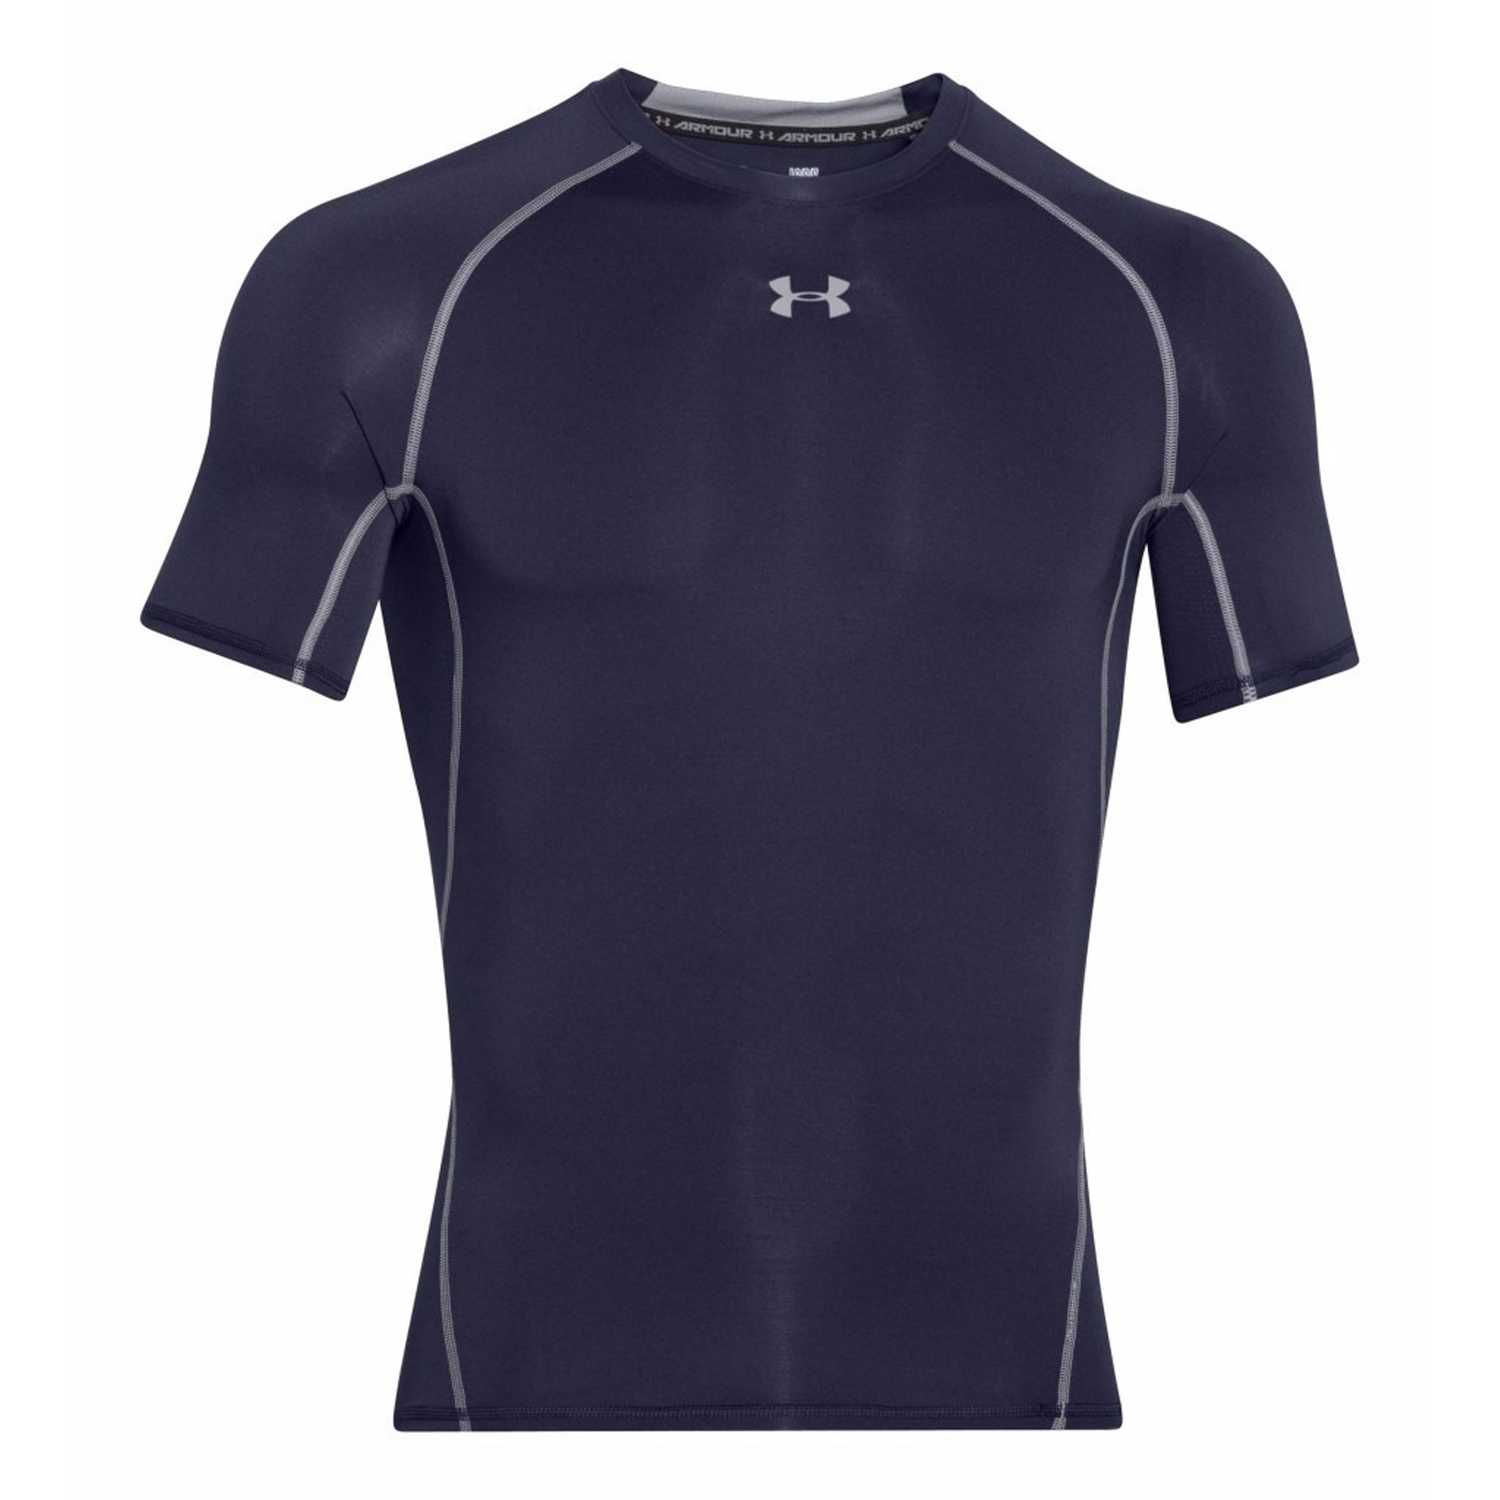 Under Armour armour hg ss t Acero / gris Ropa Interior Deportiva